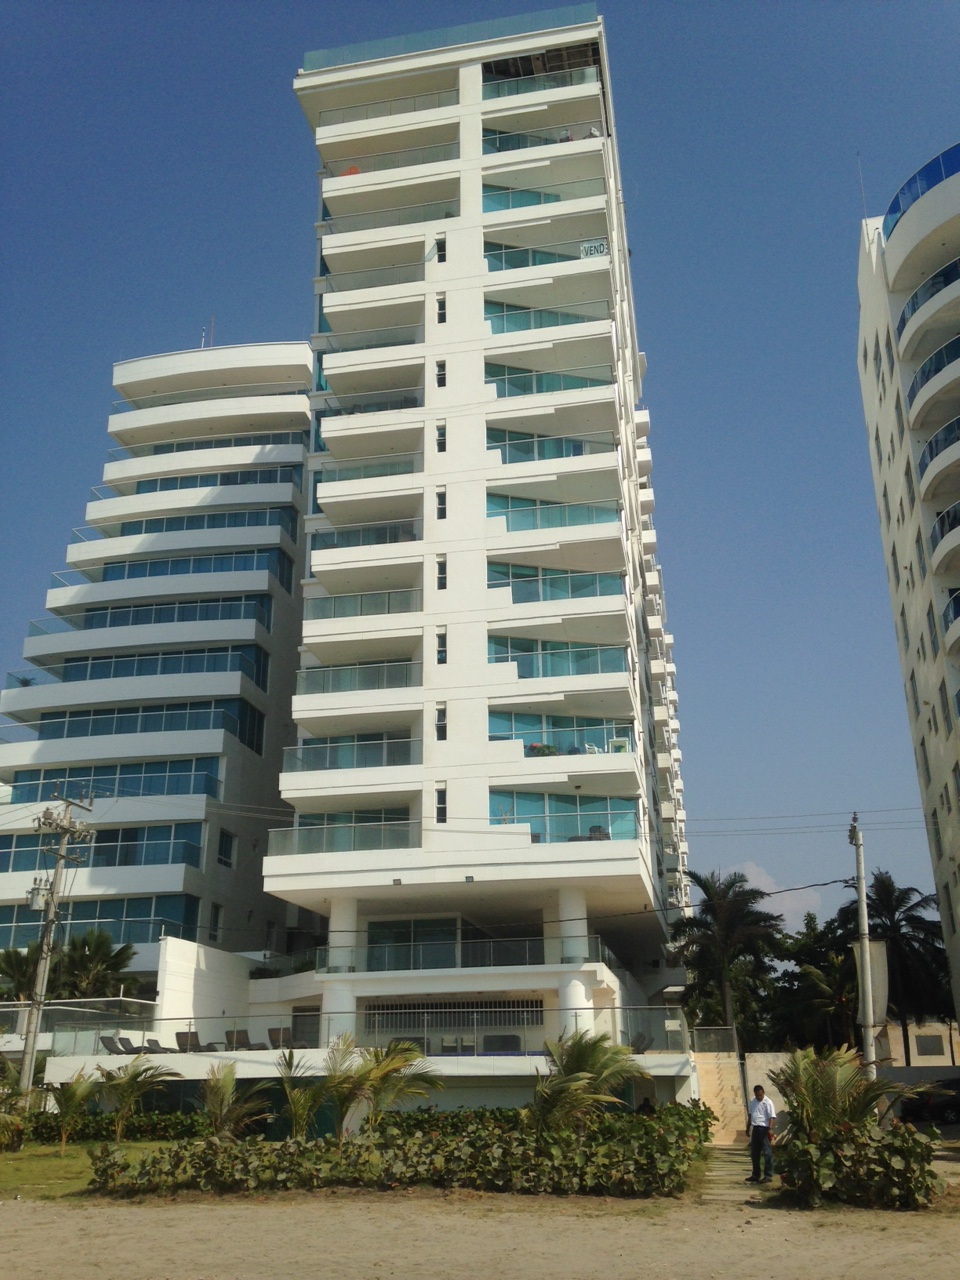 Cartagena LA BOQUILLA Porto Vento Beachfront apartment